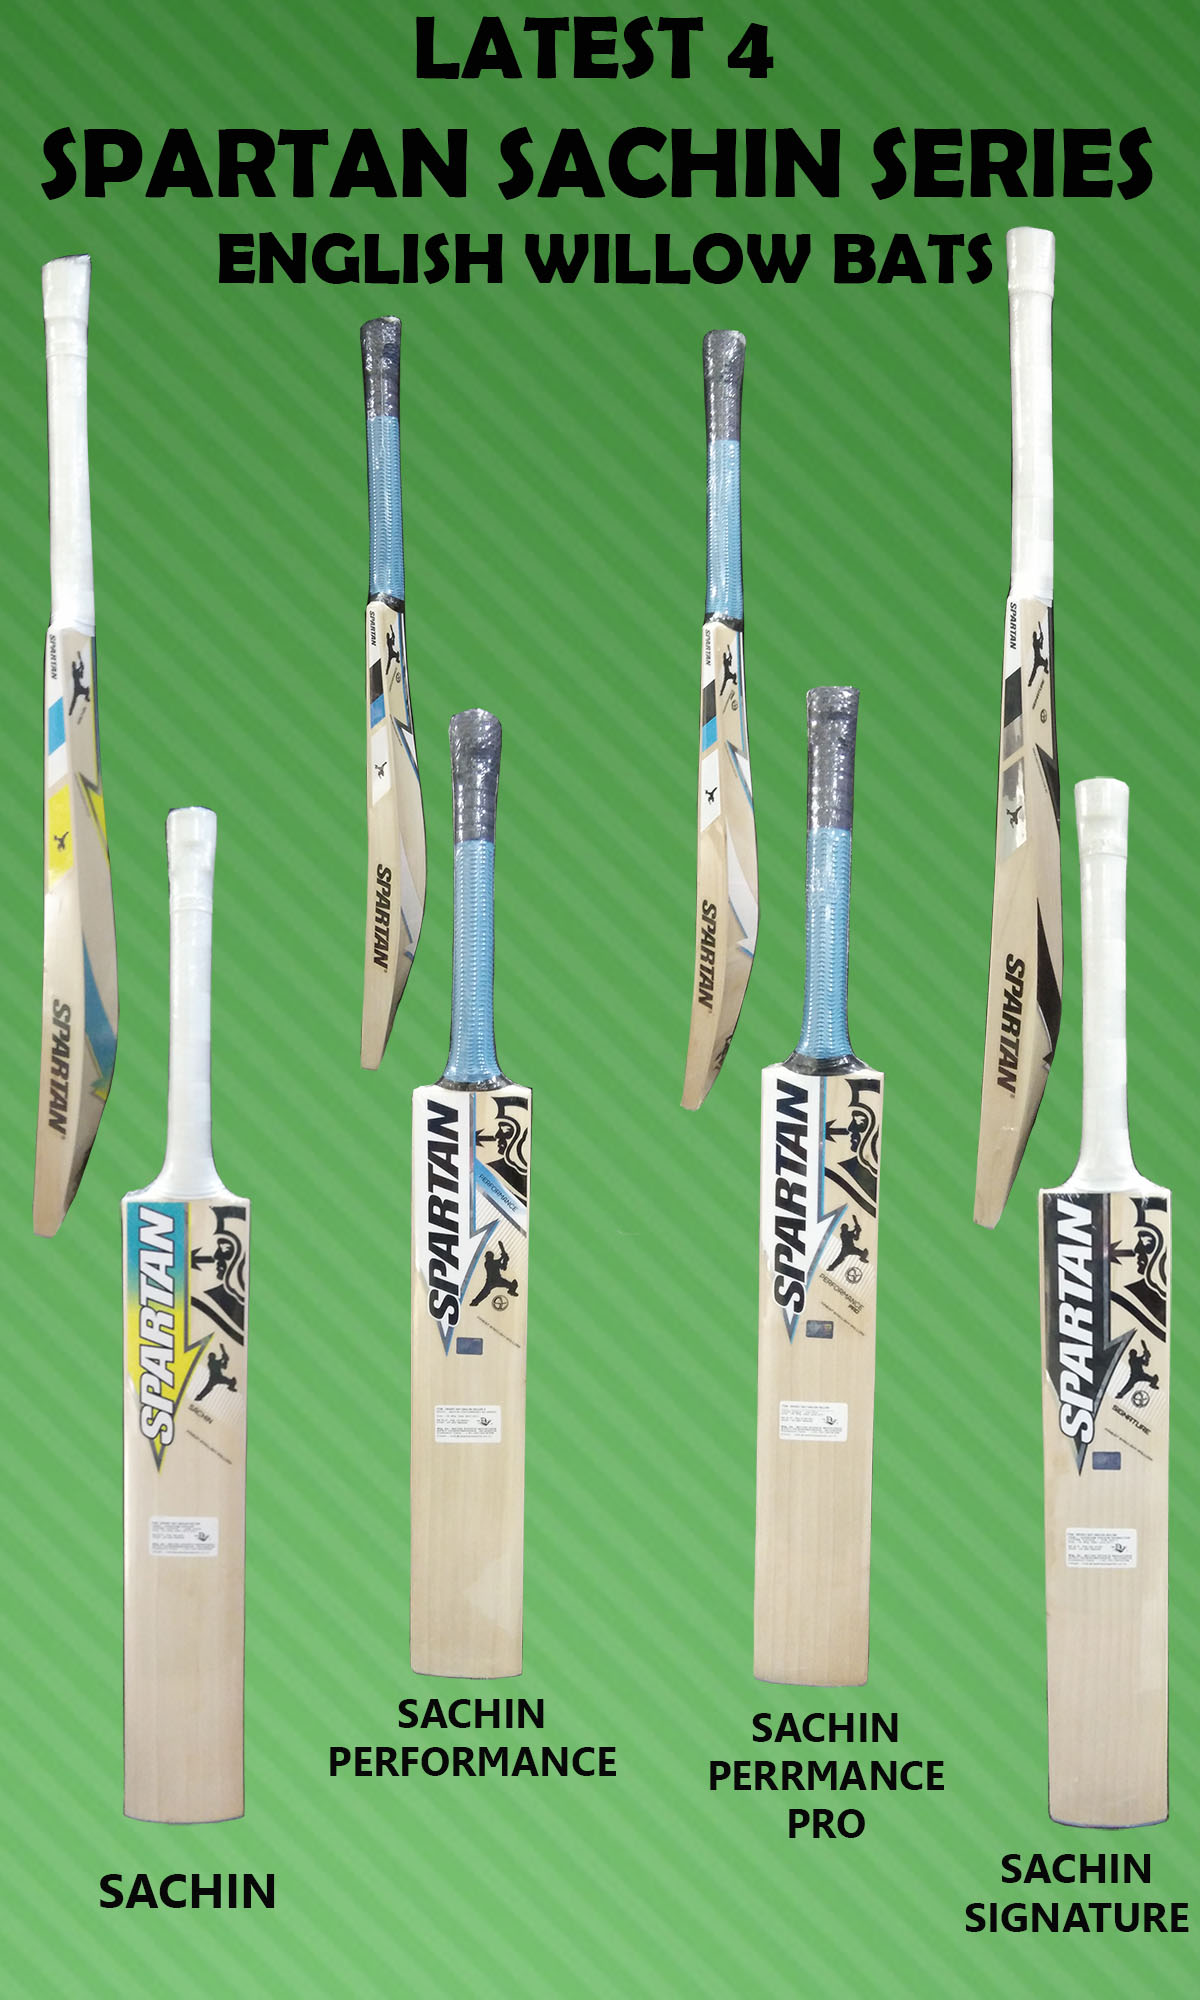 LATEST 4 SPARTAN SACHIN SERIES ENGLISH WILLOW BATS_1